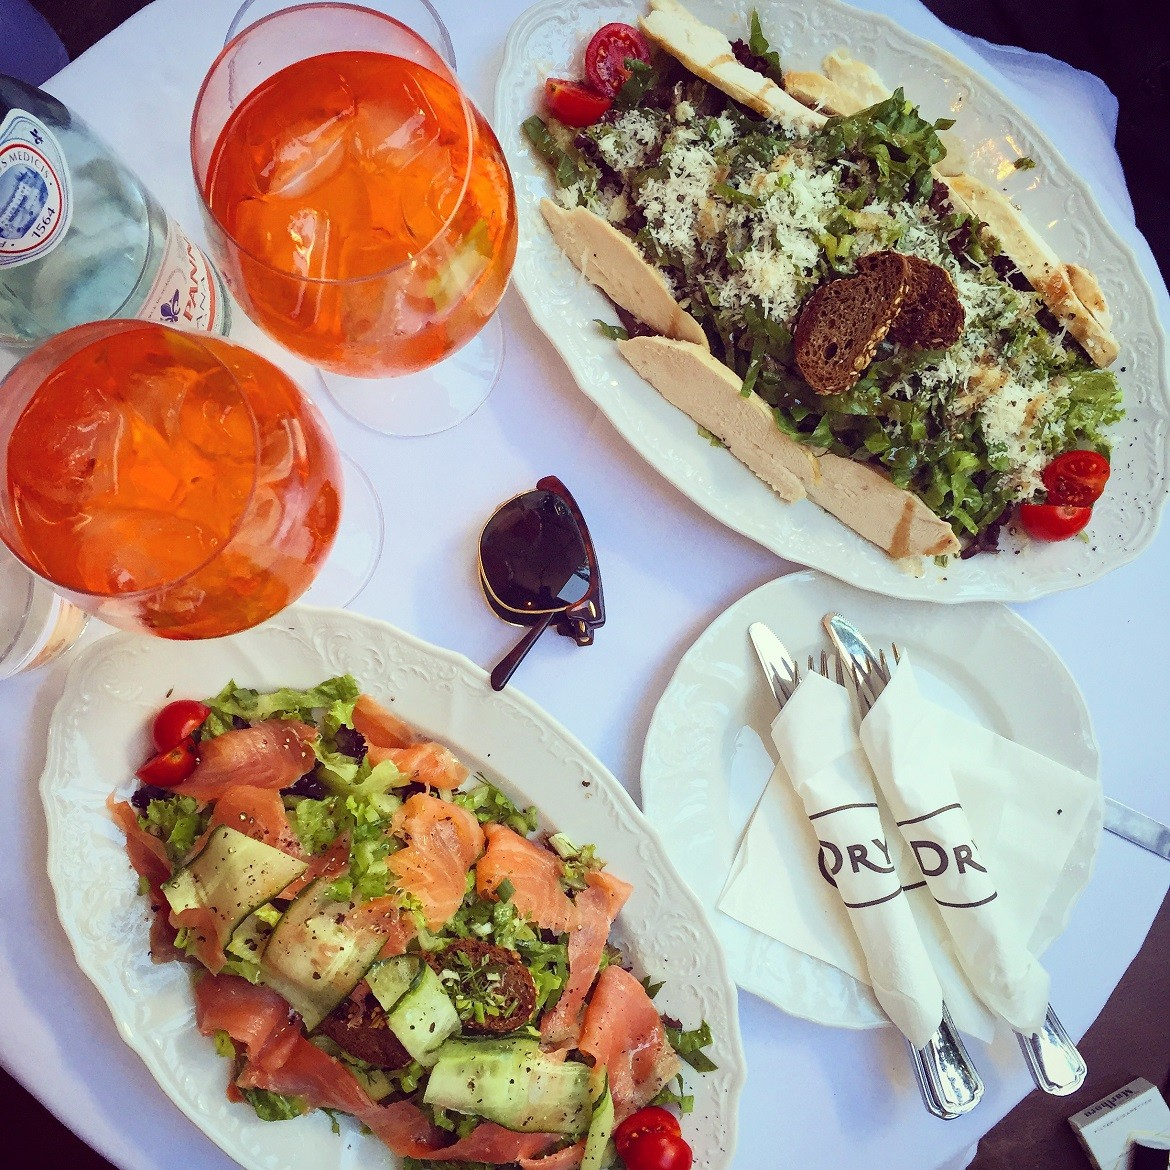 Light lunch having green salad with chicken breast or salmon +++ Aperol Spritz!